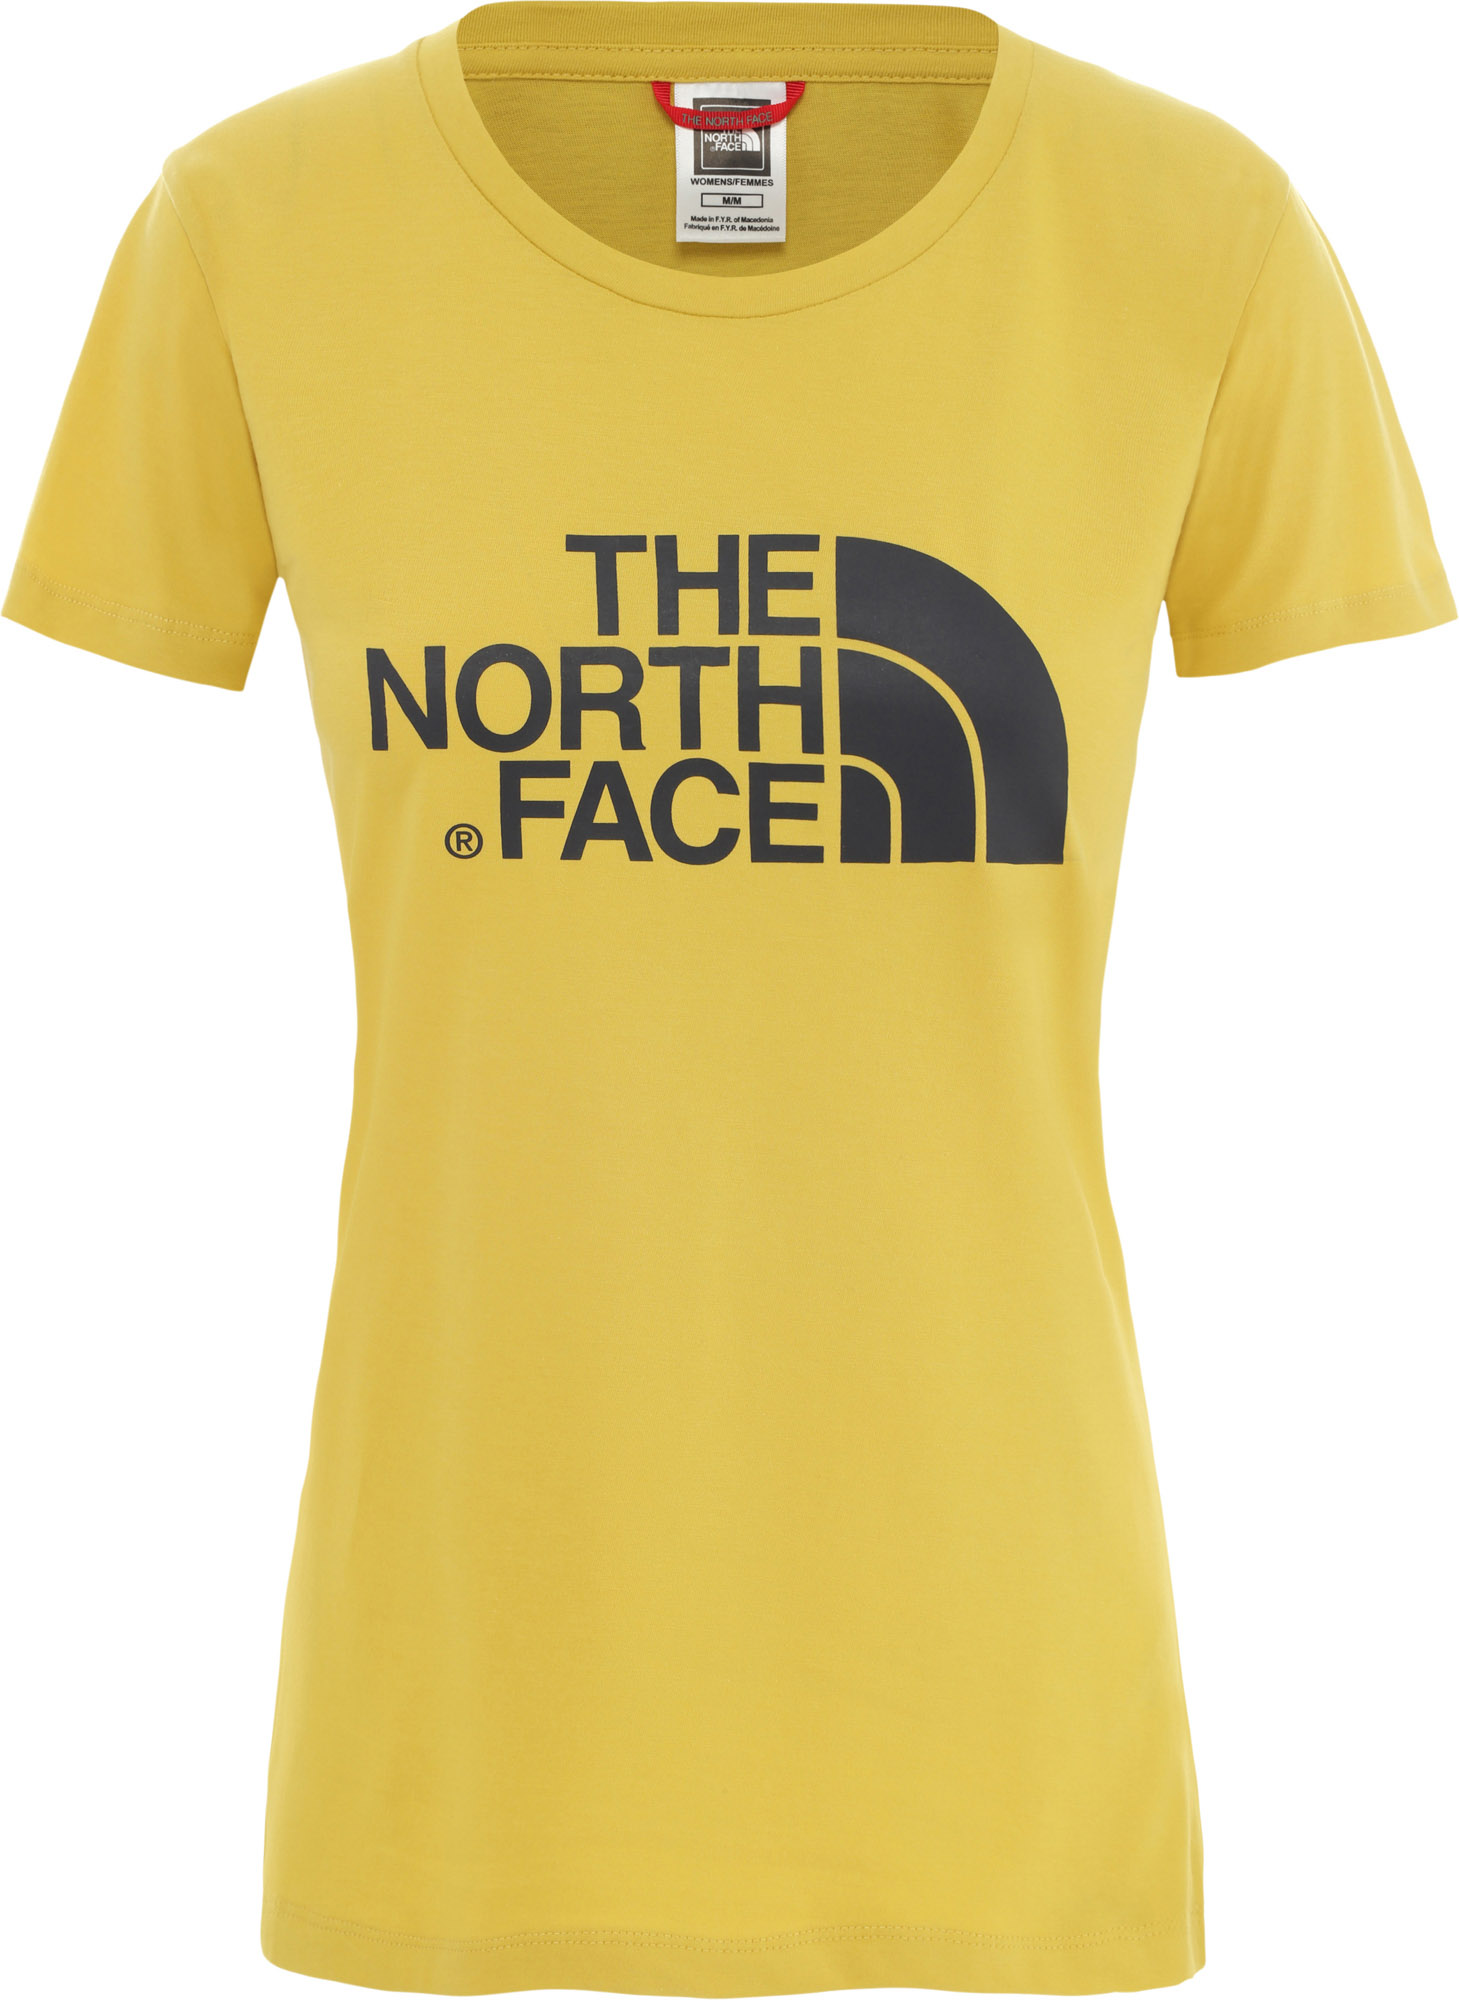 цена на The North Face Футболка женская The North Face Easy, размер 46